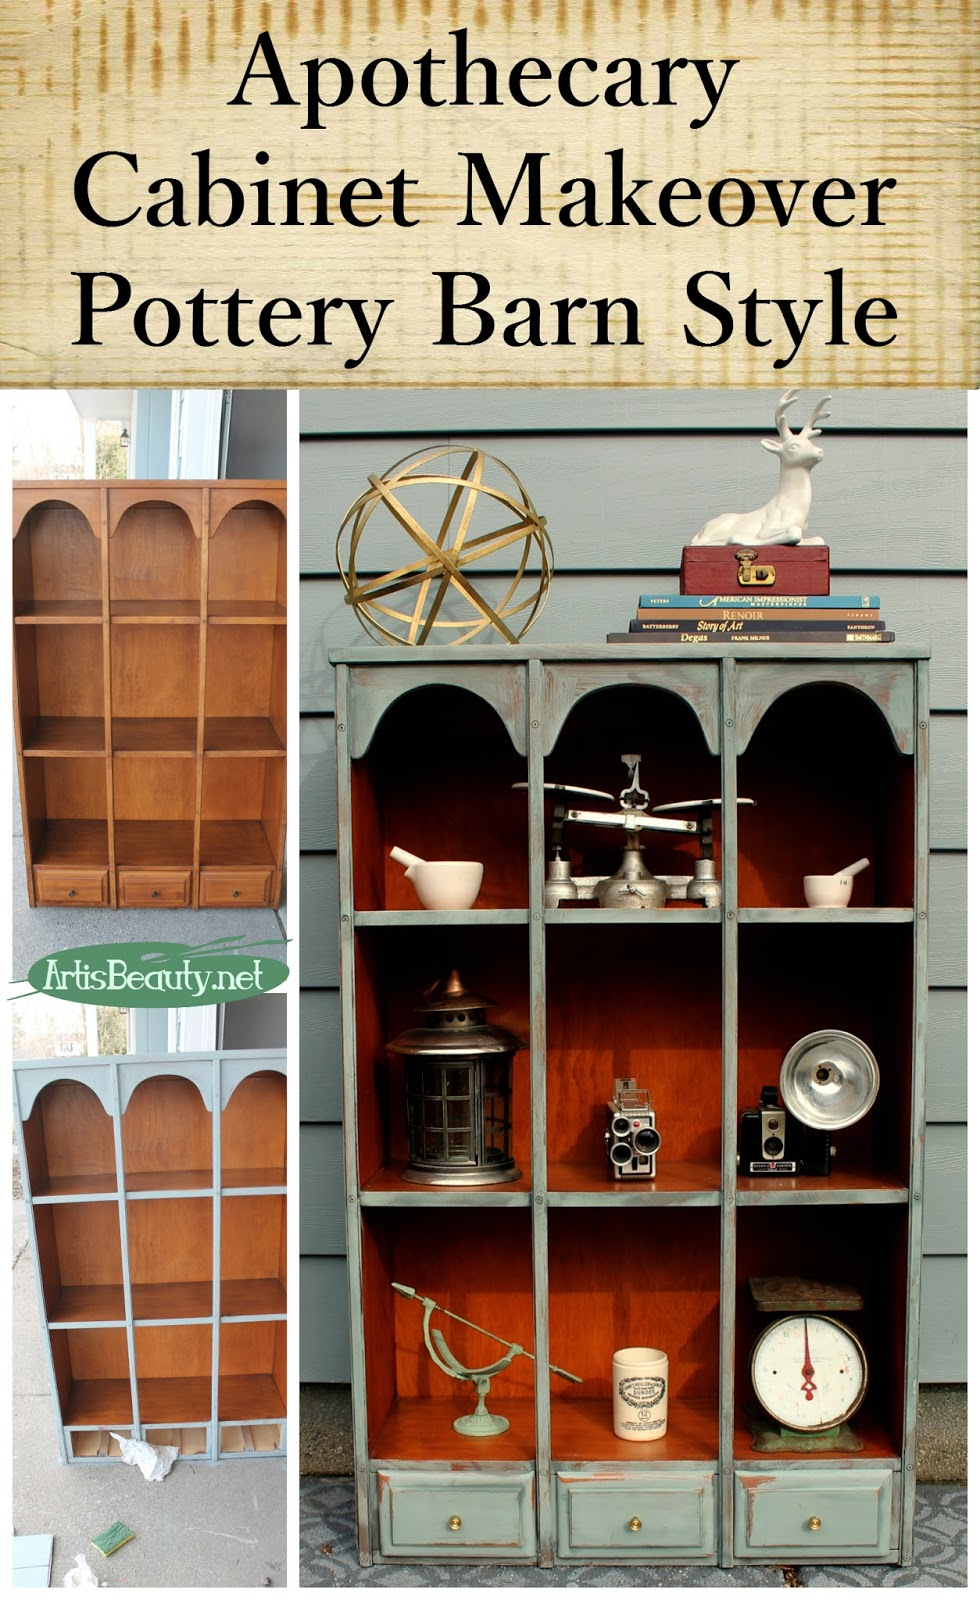 ART IS BEAUTY: Apothecary Cabinet Makeover Pottery Barn Style